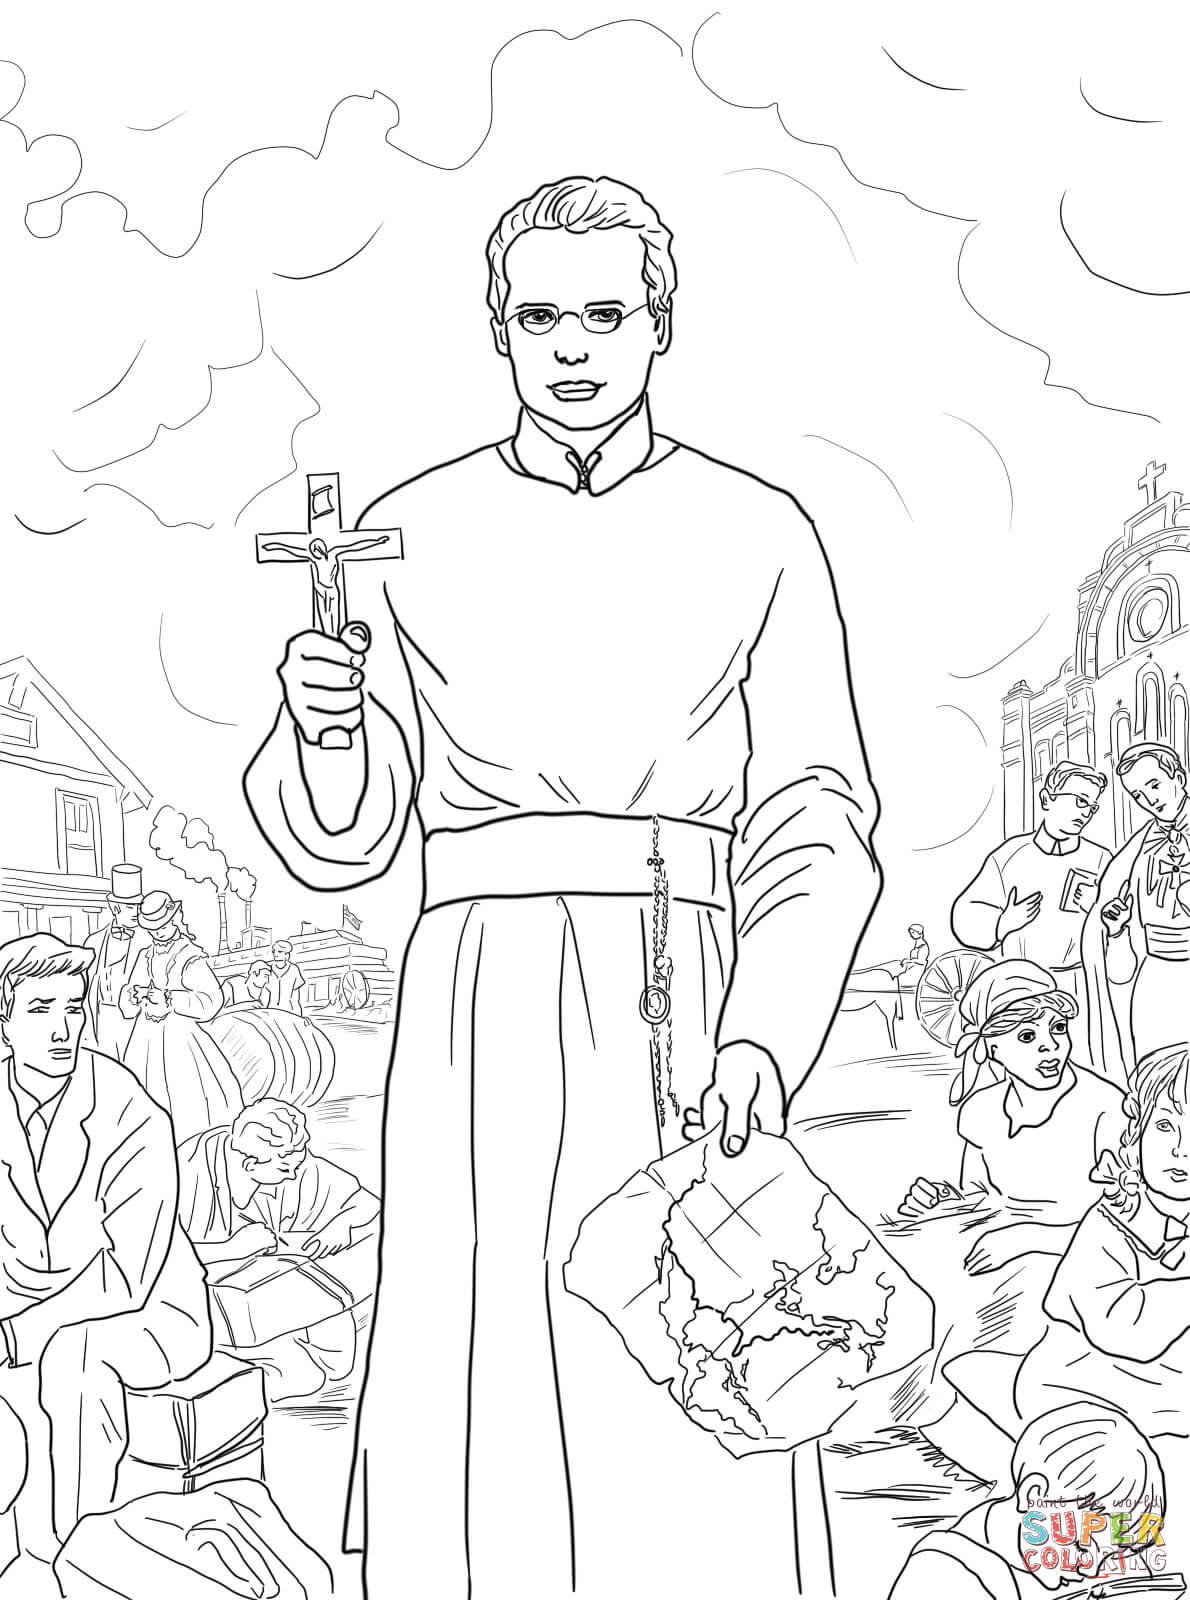 st francis xavier coloring page st francis of assisi coloring pages coloring home xavier coloring francis page st